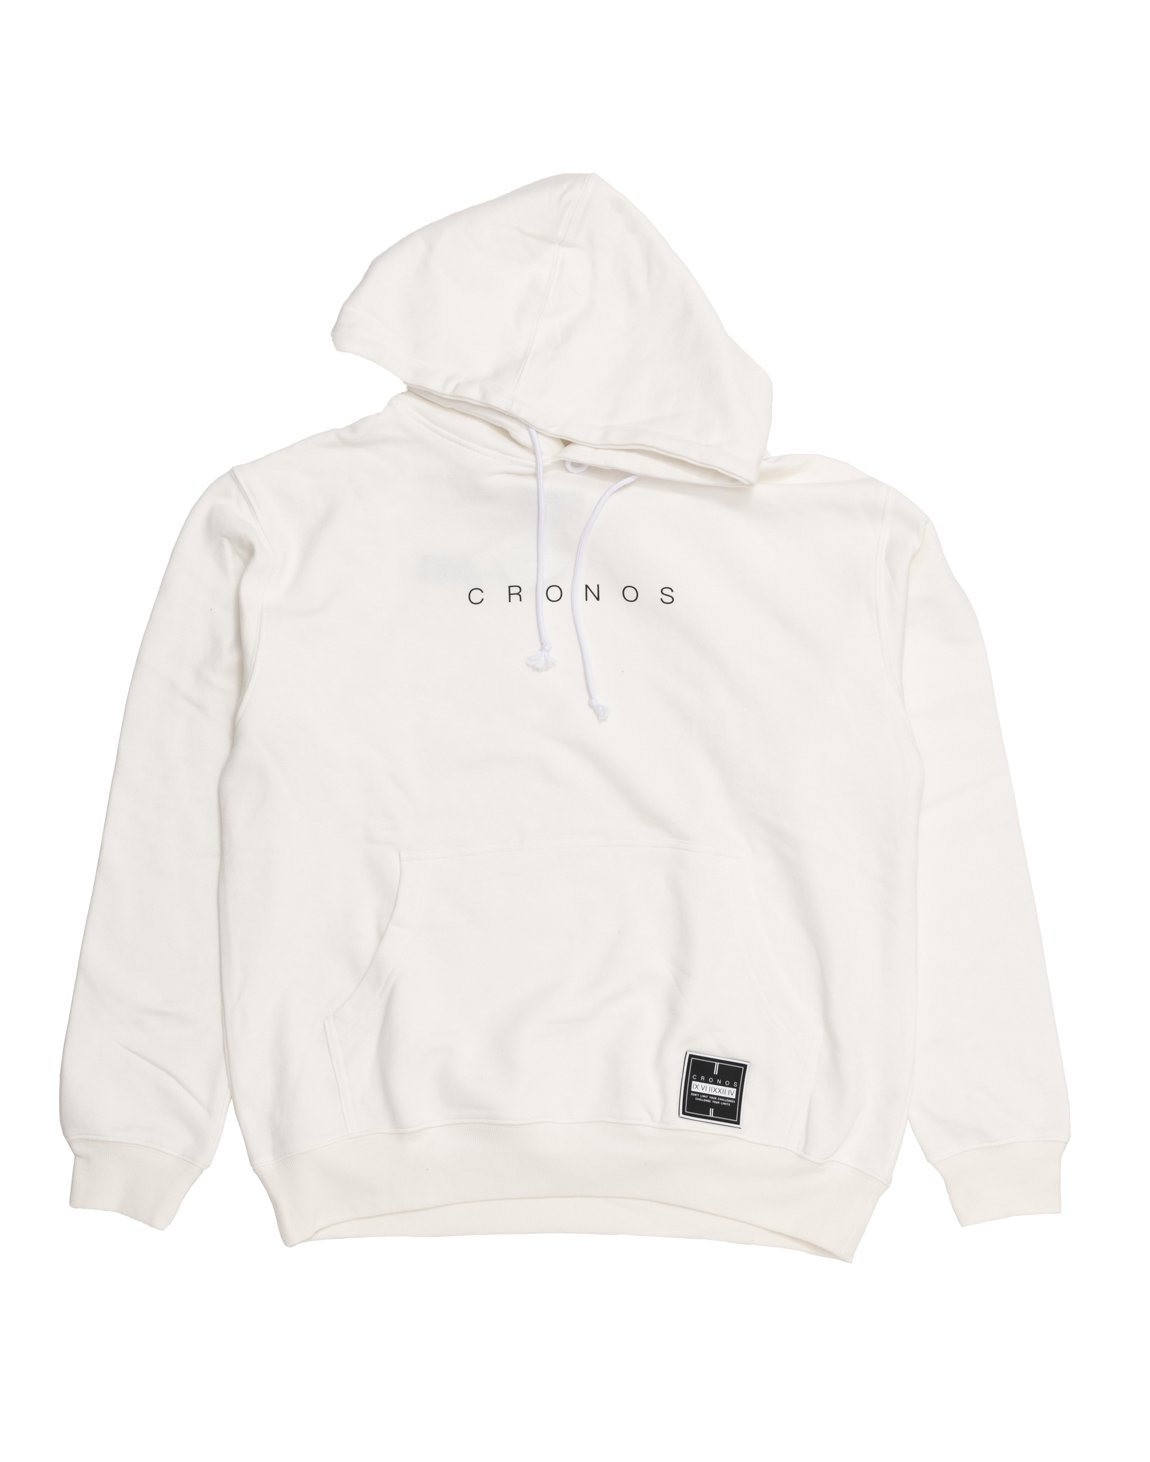 <img class='new_mark_img1' src='https://img.shop-pro.jp/img/new/icons1.gif' style='border:none;display:inline;margin:0px;padding:0px;width:auto;' />CRONOS NUMERALS PATCH PARKA 【WHITE】